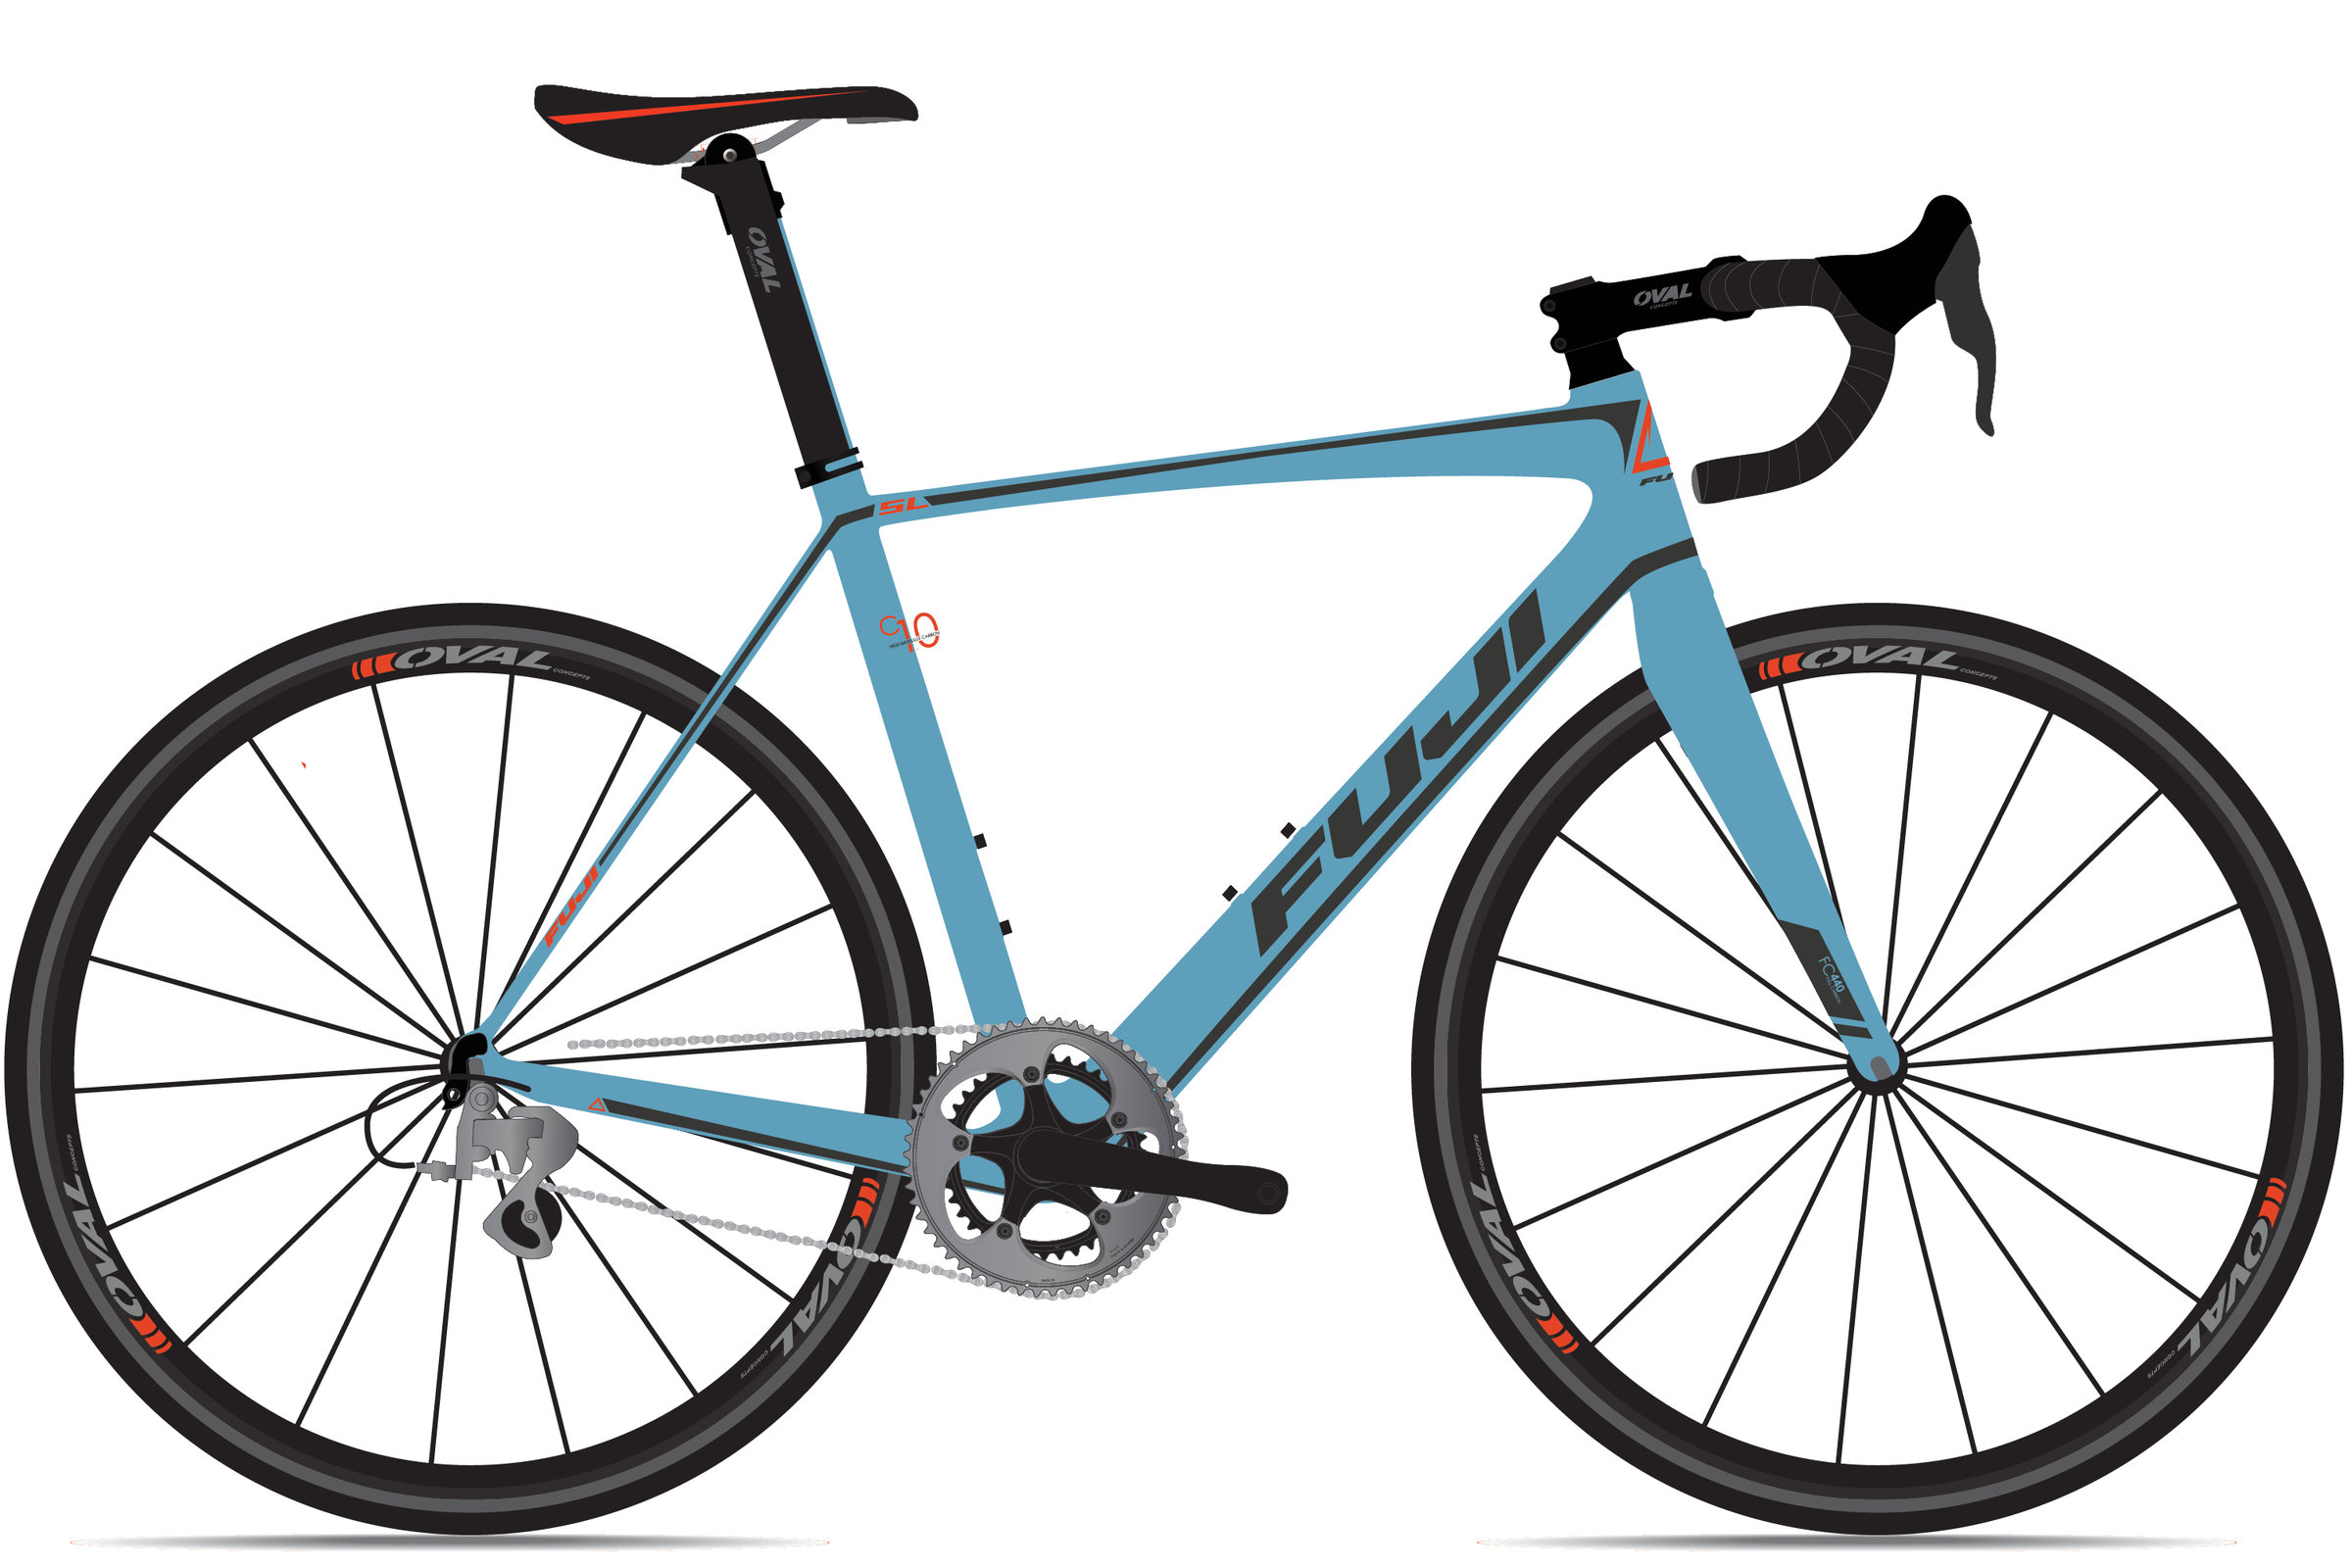 b088ebf2436 Fuji SL 2.1 DISC - Tuckahoe Bike Shop Woodbine Ocean City Sea Isle ...